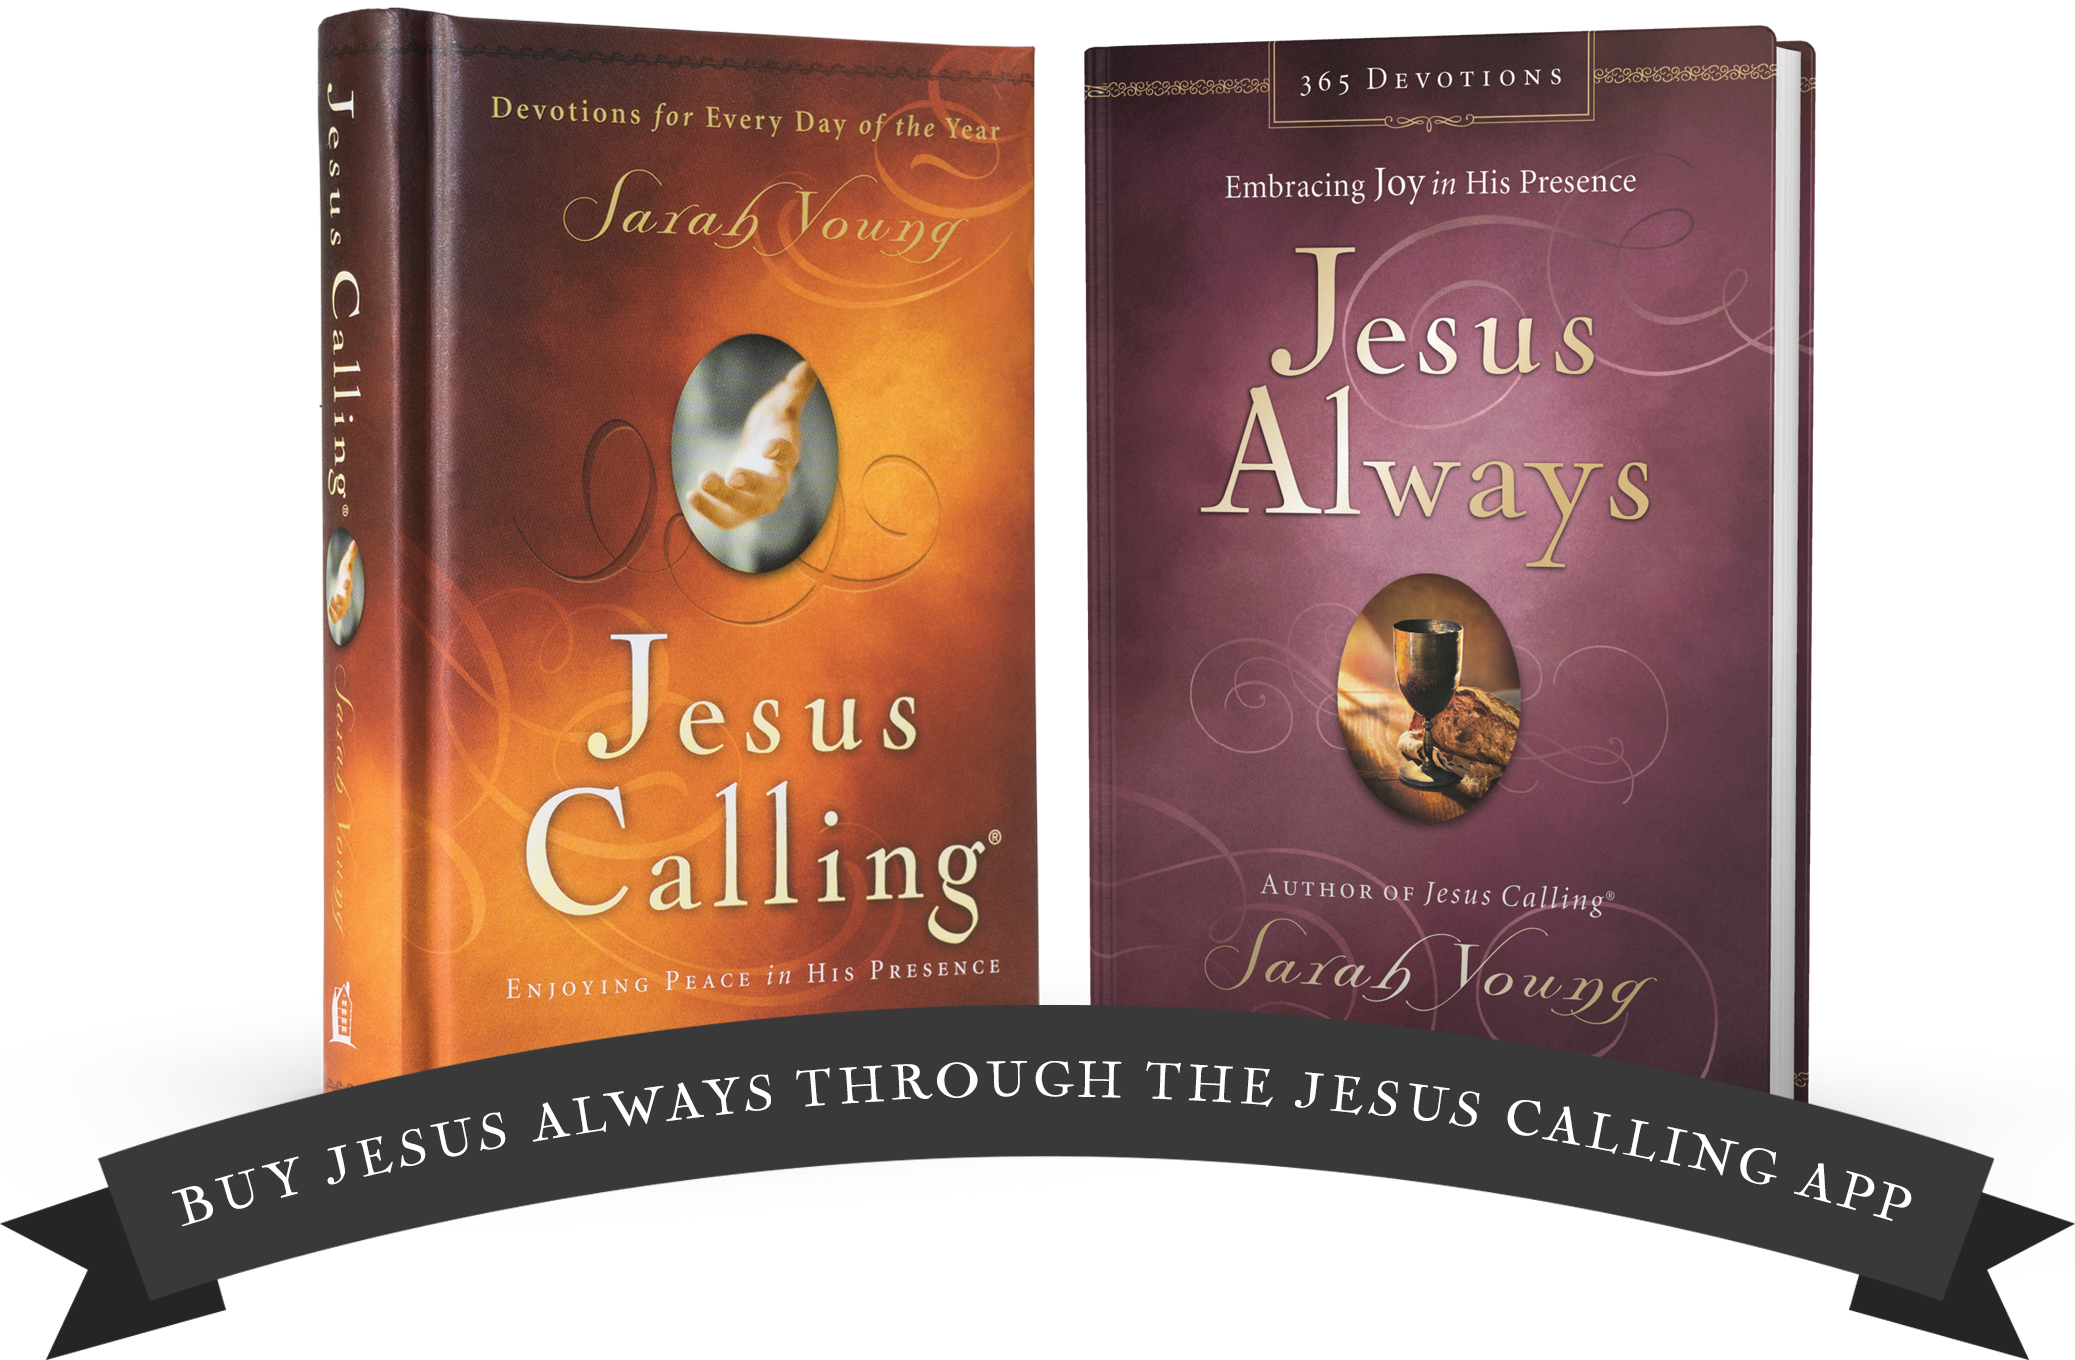 App (With images) Jesus calling, Daily devotional apps